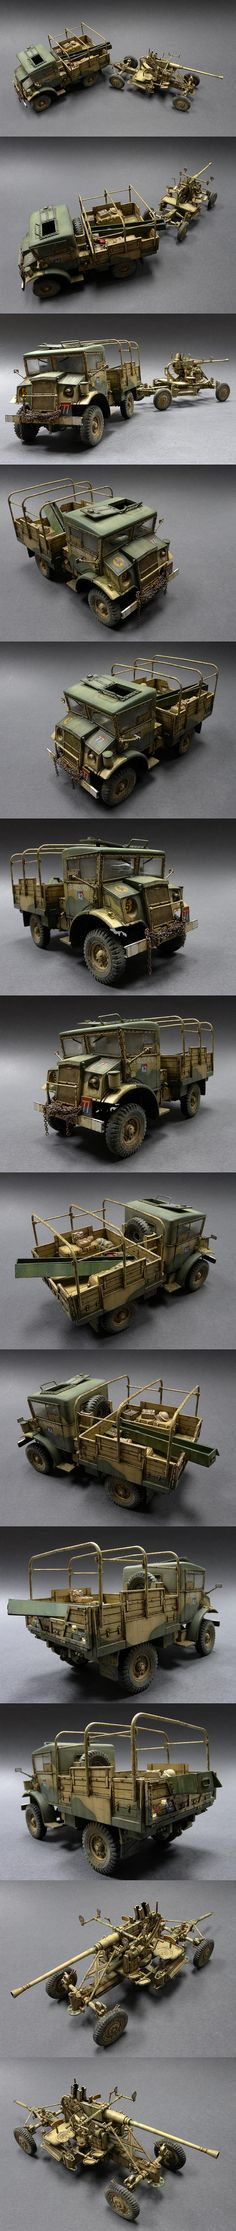 Chevrolet 15CWT & Bofors 40mm 1/35 Scale Model